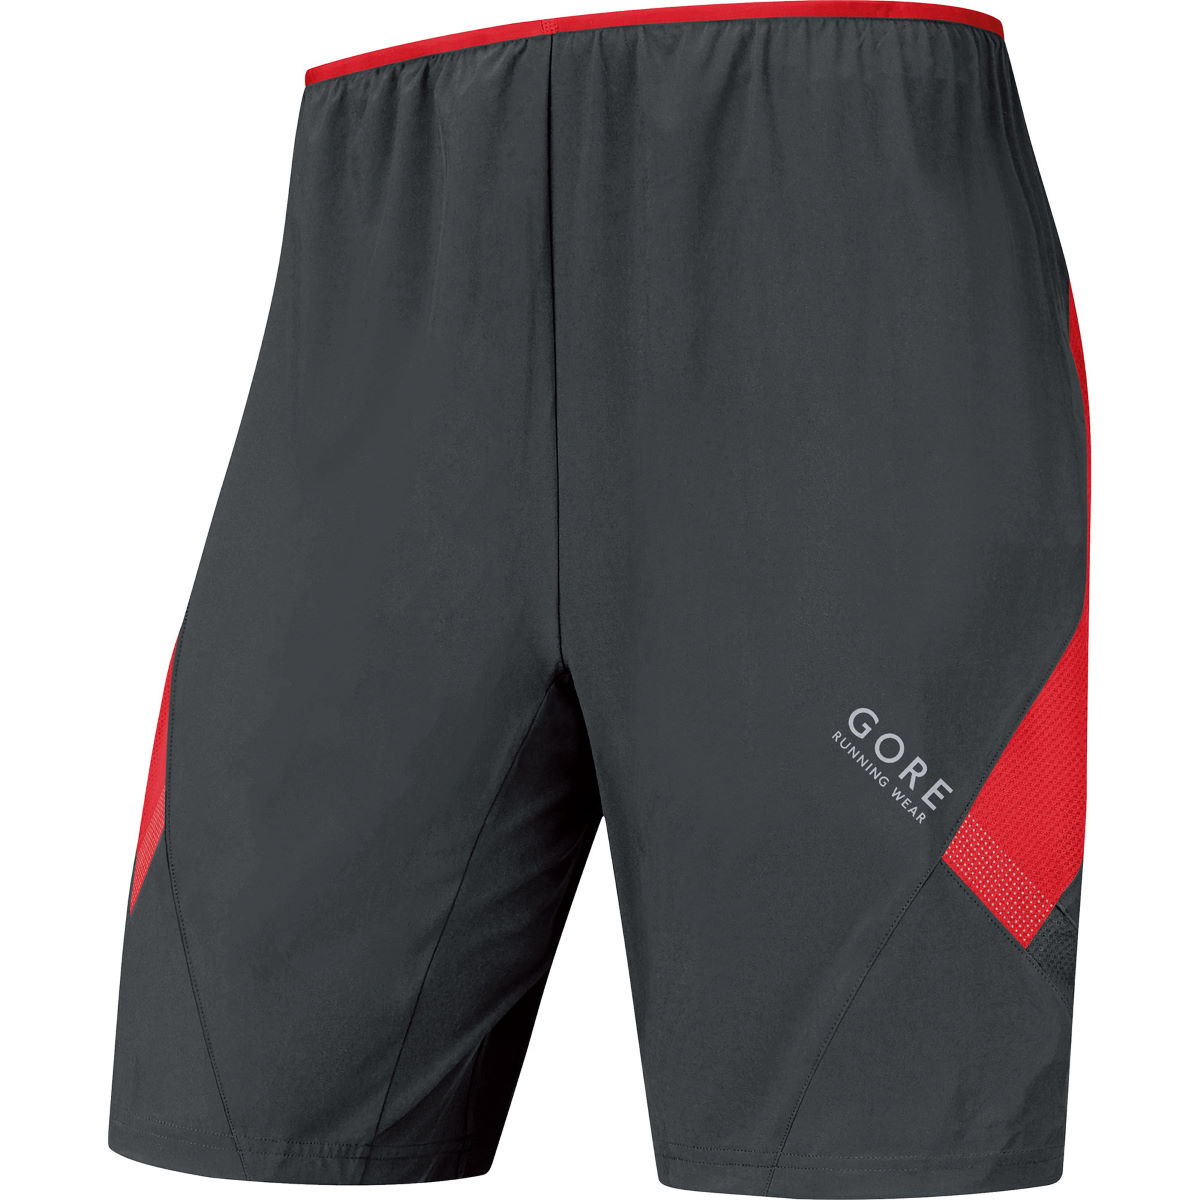 Short Gore Running Wear Air (2 en 1) - L black/red Shorts de running